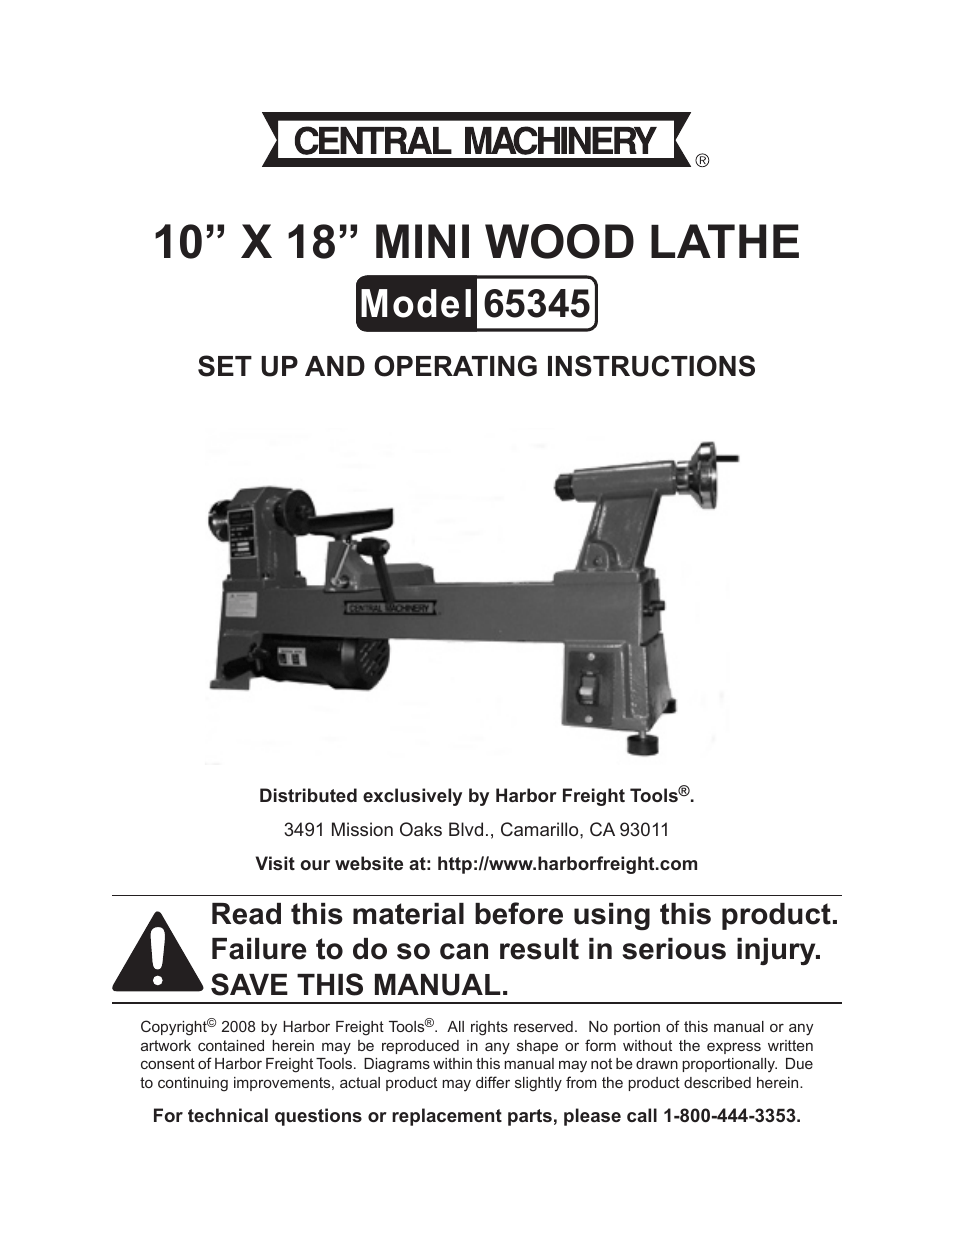 Central Machinery Wood Lathe Replacement Parts